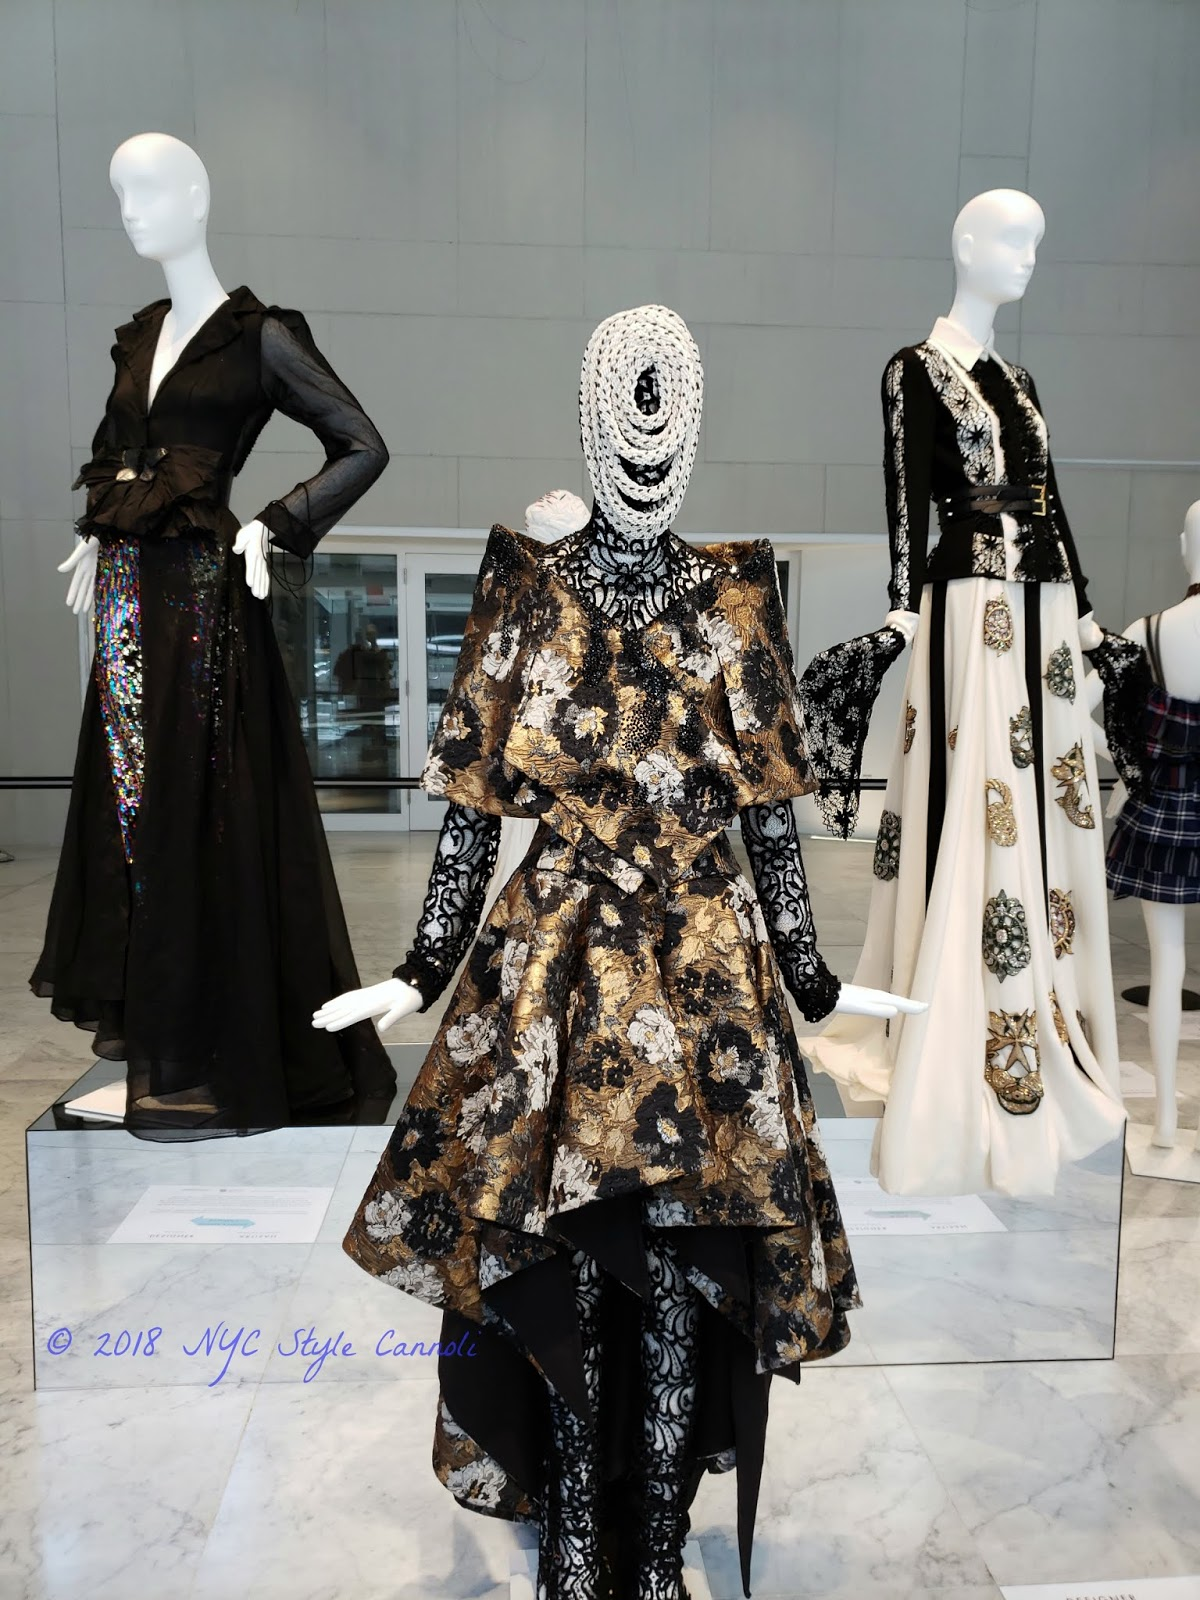 NYC, Style & a little Cannoli: Fashions at Museum at FIT